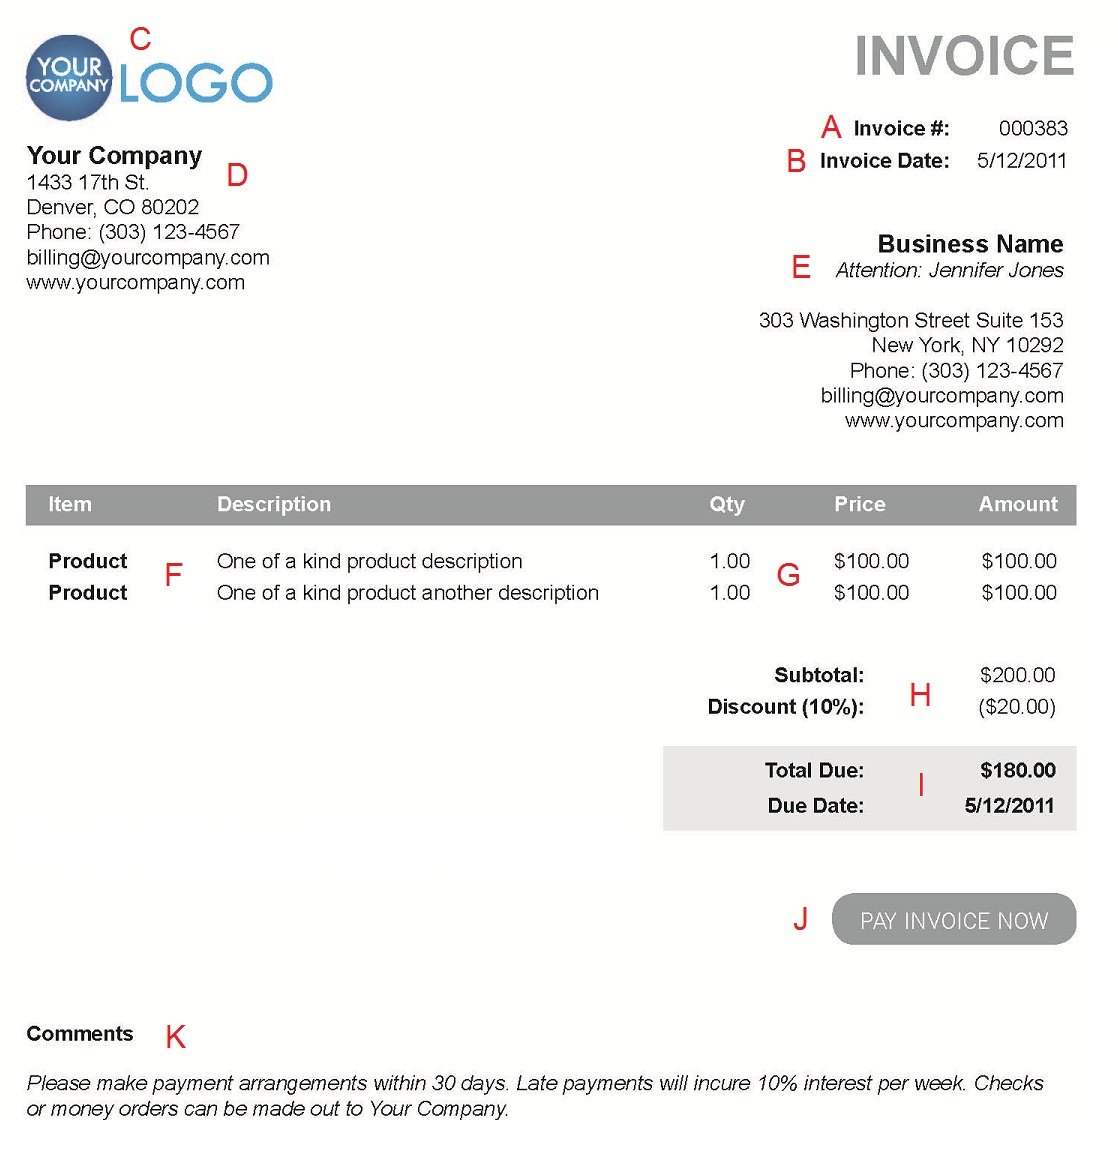 Pigbrotherus  Prepossessing The  Different Sections Of An Electronic Payment Invoice With Gorgeous A  With Delightful Target Return Policy With No Receipt Also Synonyms For Receipt In Addition Ithaca Receipt Printer And Gmail Send Receipt As Well As Sample Sales Receipt Additionally Word Template Receipt From Paysimplecom With Pigbrotherus  Gorgeous The  Different Sections Of An Electronic Payment Invoice With Delightful A  And Prepossessing Target Return Policy With No Receipt Also Synonyms For Receipt In Addition Ithaca Receipt Printer From Paysimplecom